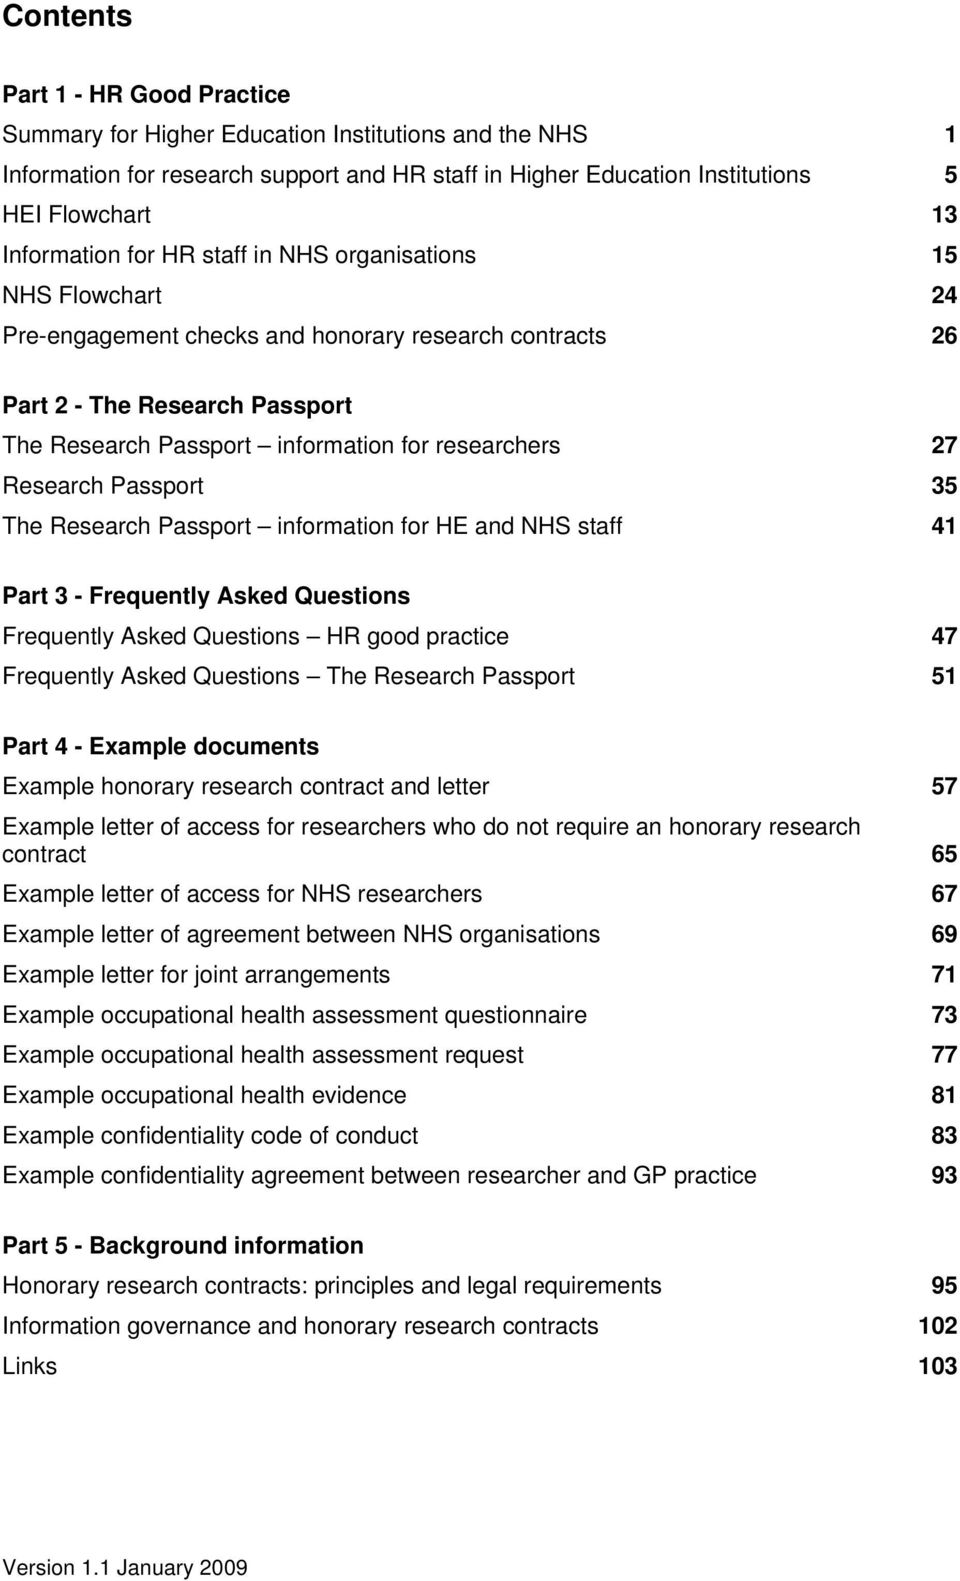 researchers 27 Research Passport 35 The Research Passport information for HE and NHS staff 41 Part 3 - Frequently Asked Questions Frequently Asked Questions HR good practice 47 Frequently Asked